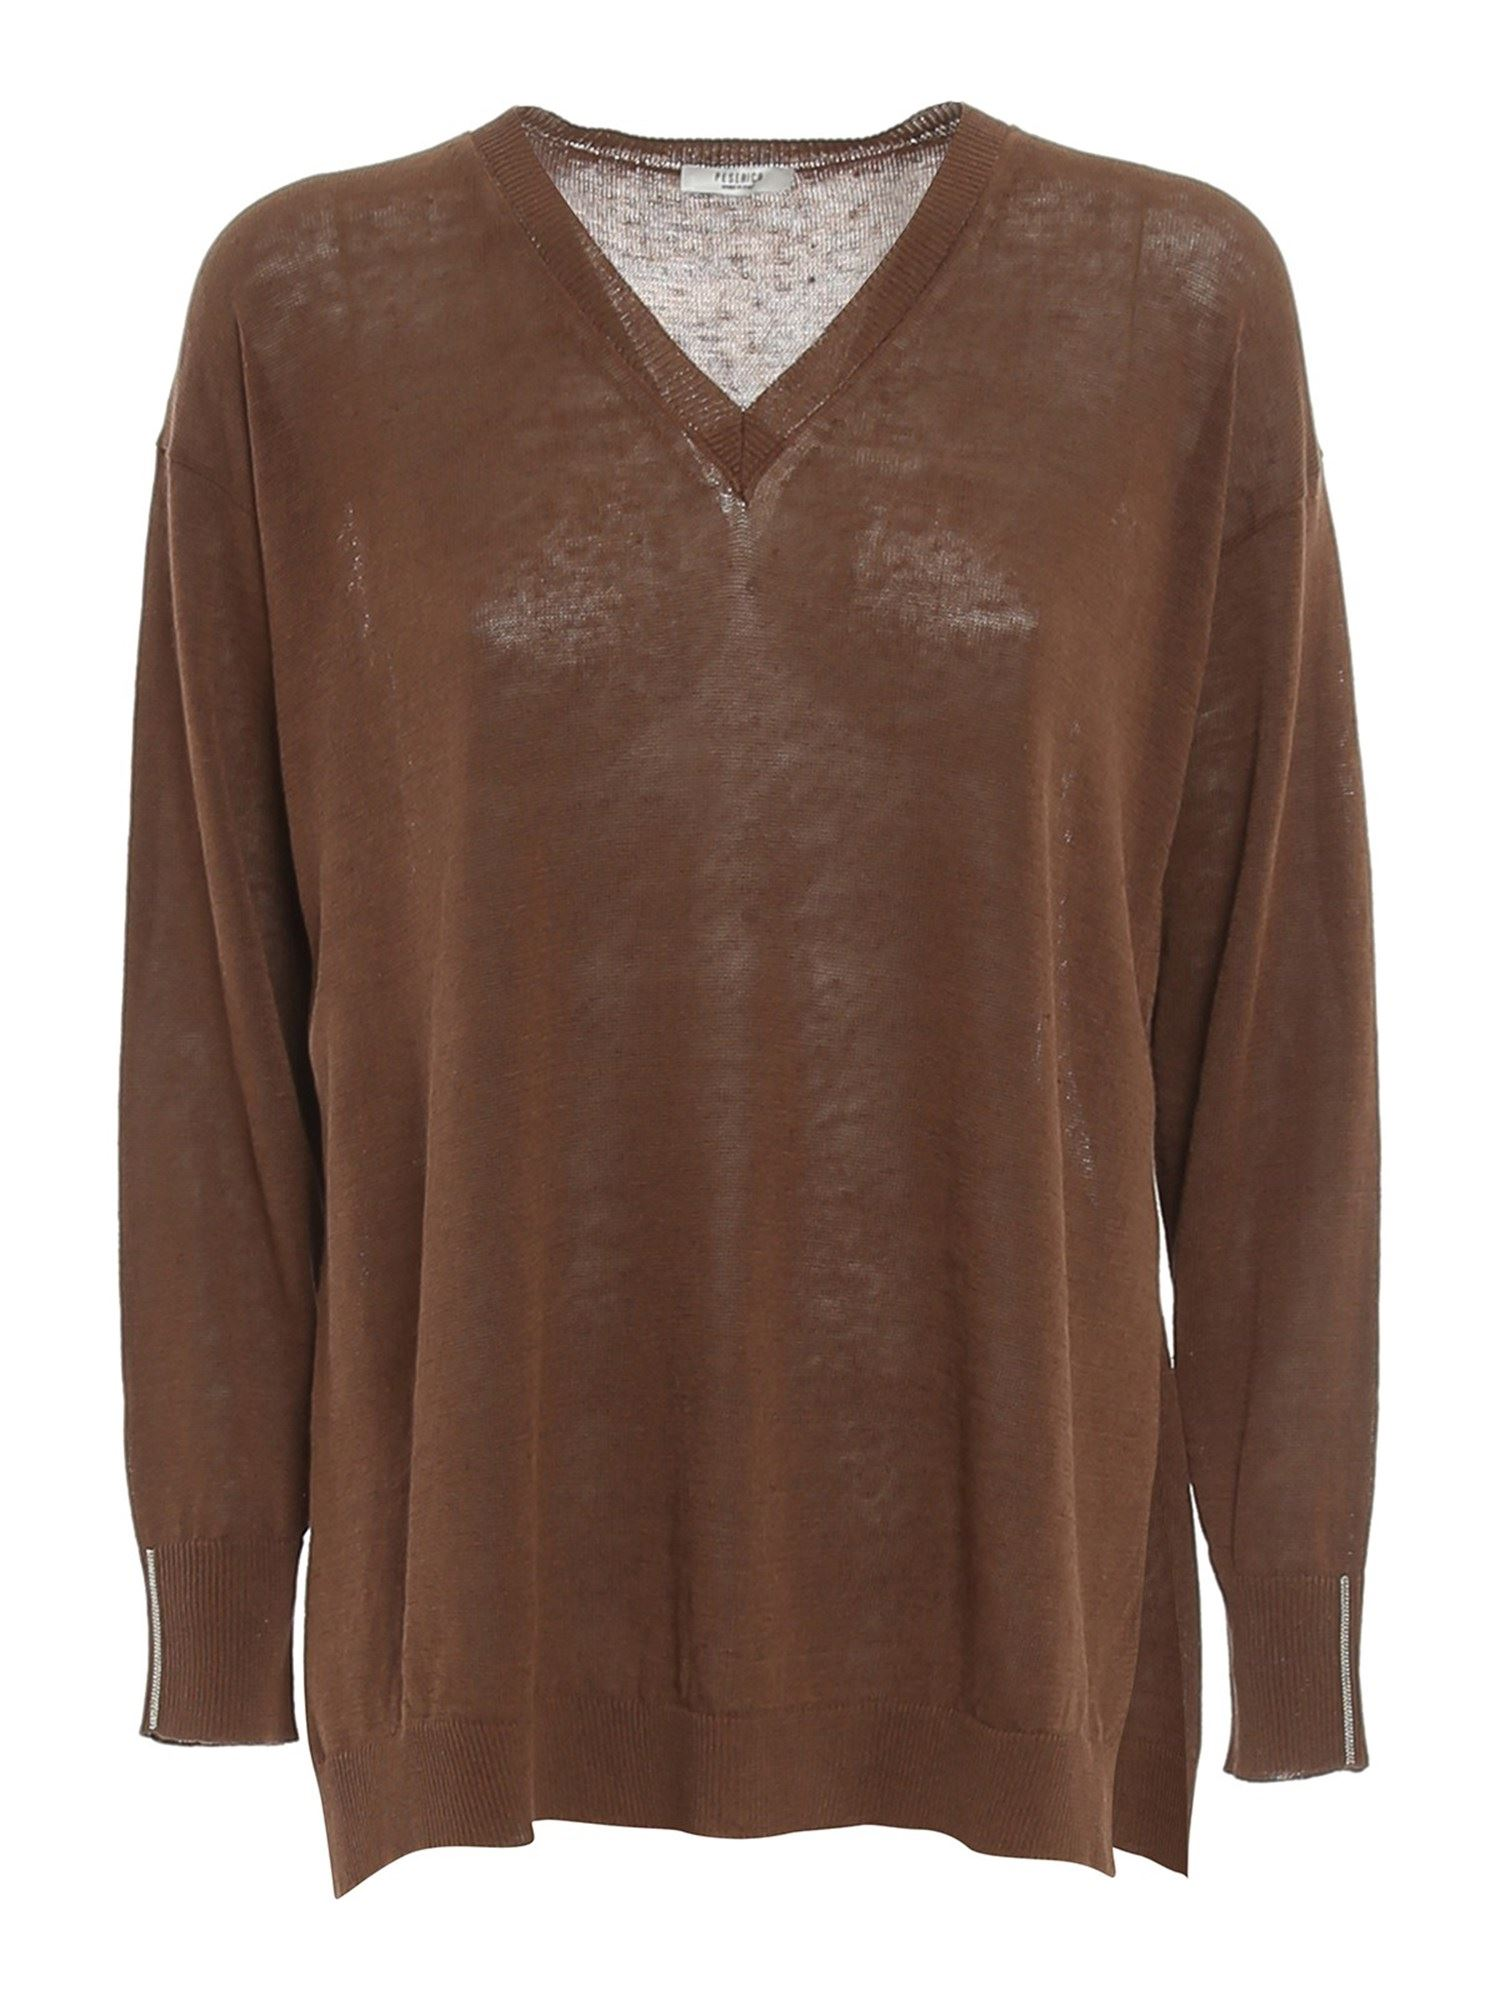 Peserico V-NECK RIBBED SWEATER IN BROWN